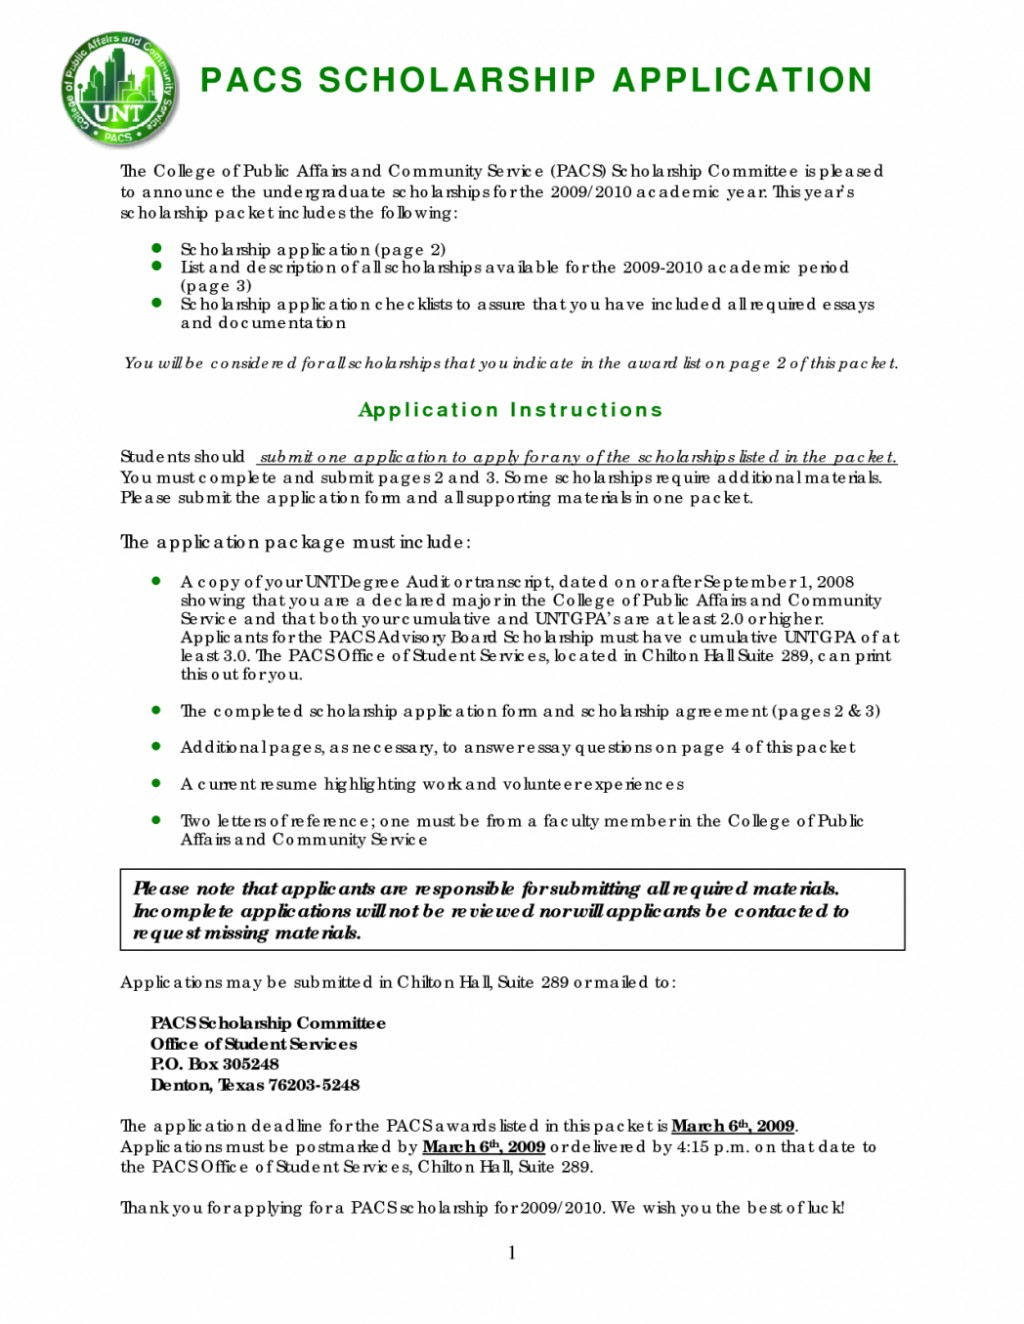 021 Essay Example Samples Of Essays For Scholarships Scholarship Application Sample Pdf 11exu Nursing College Examples Ideas Mba About Yourself 1048x1356 Imposing Non High School Freshman No Students 2019 Large